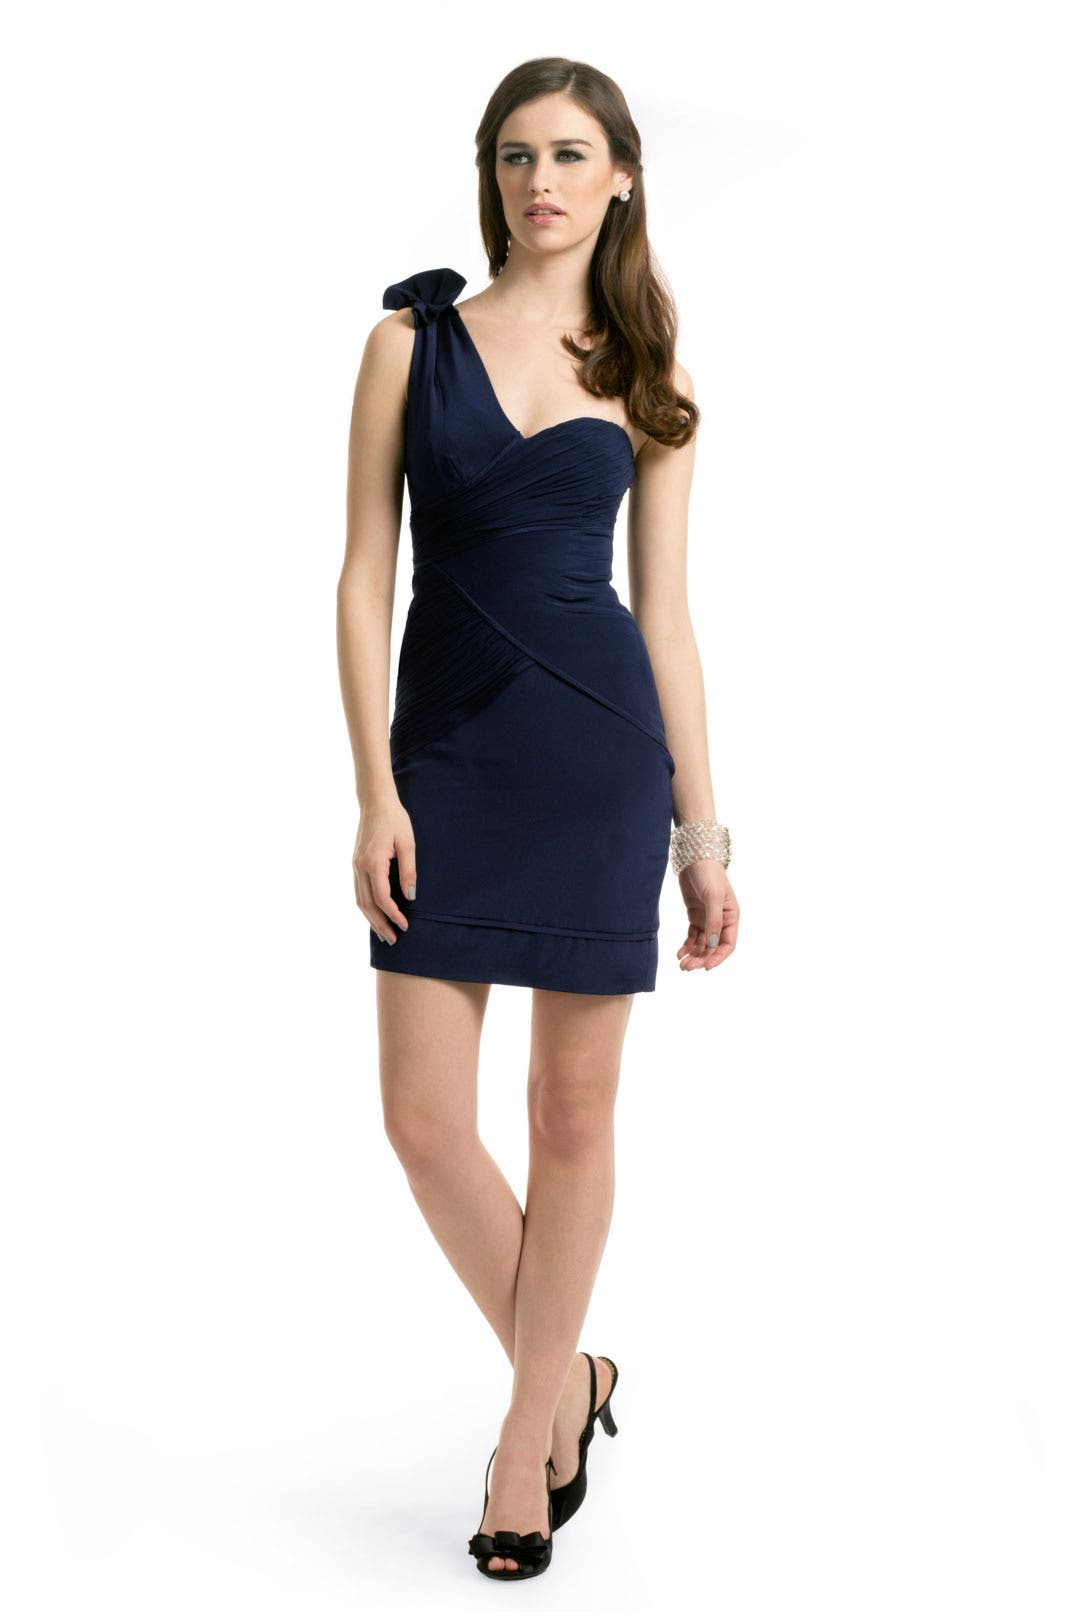 Midnight Fever Dress by Nicole Miller